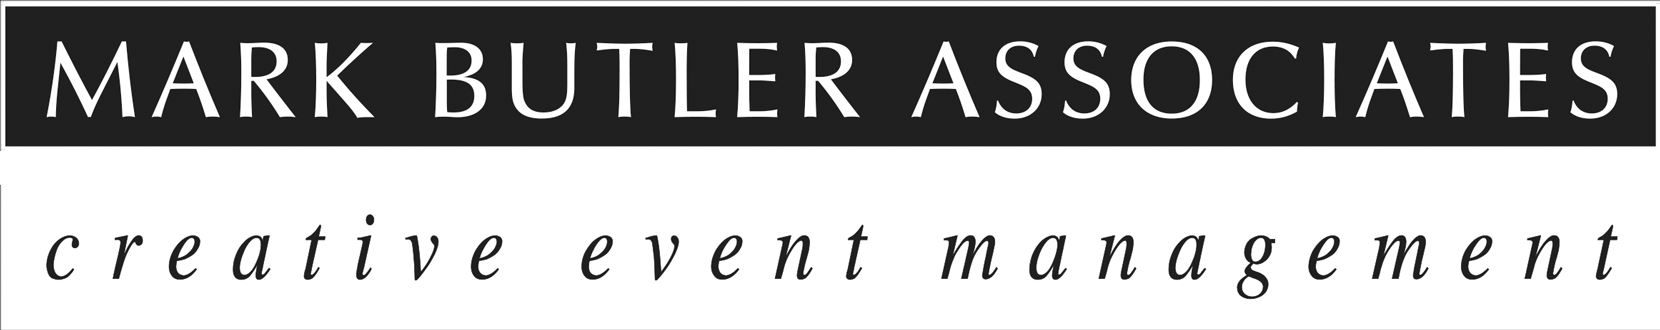 Mark Butler Associates